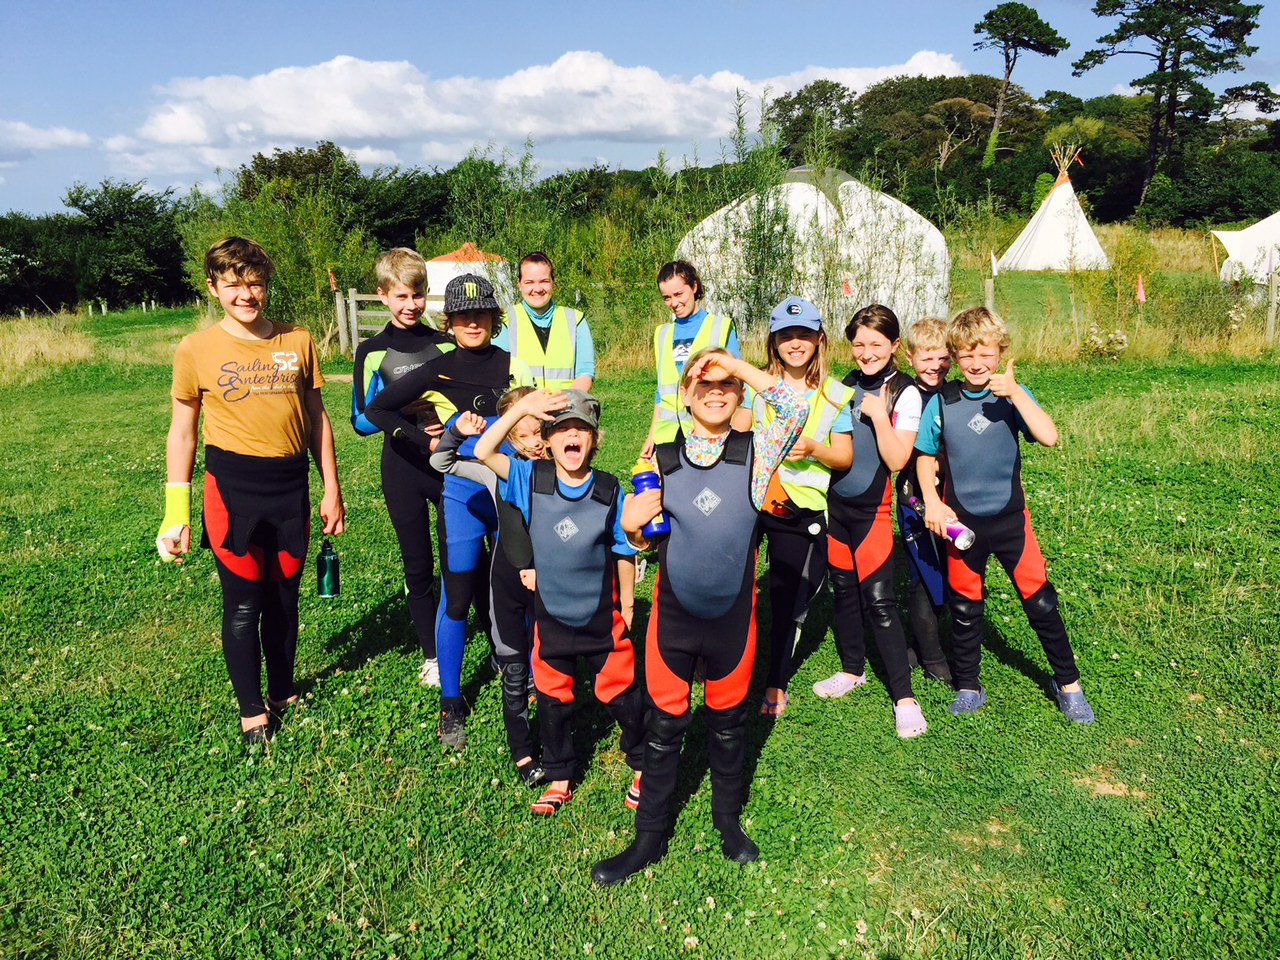 wetsuits on and ready for action!